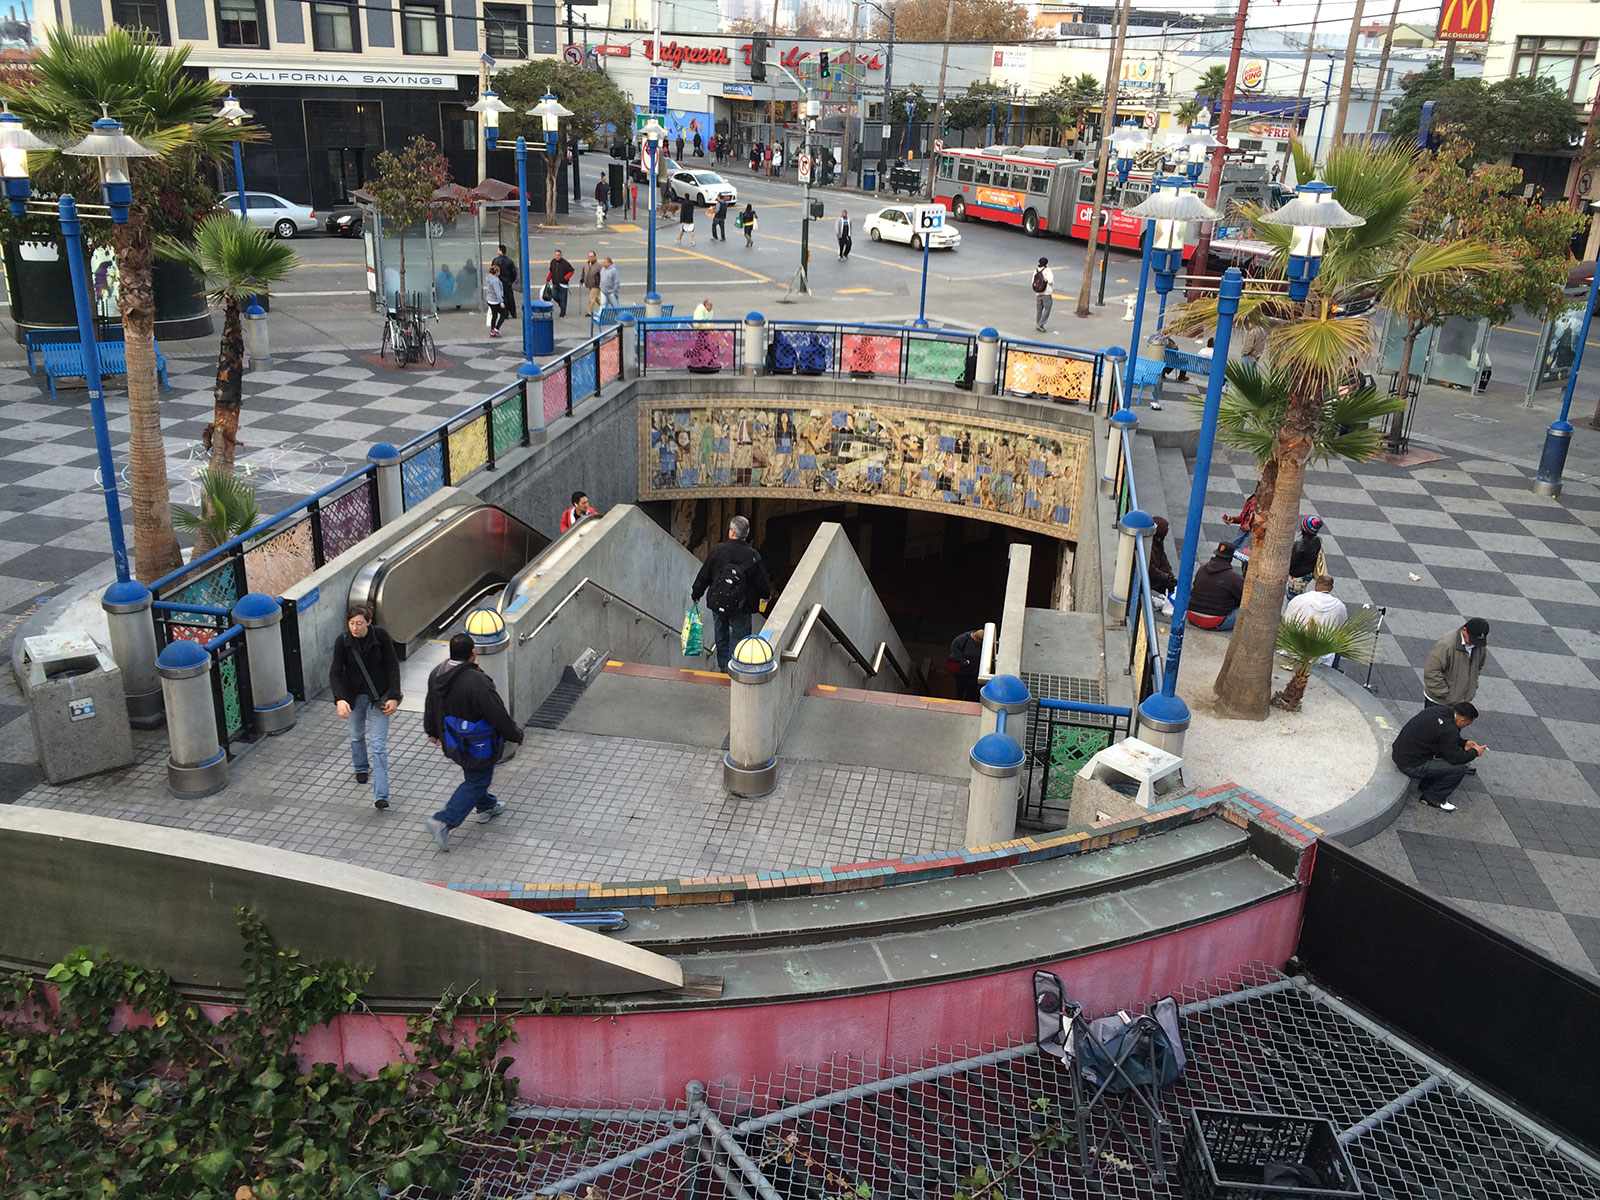 BART Plazas, Homelessness: Thinking Longer-Term